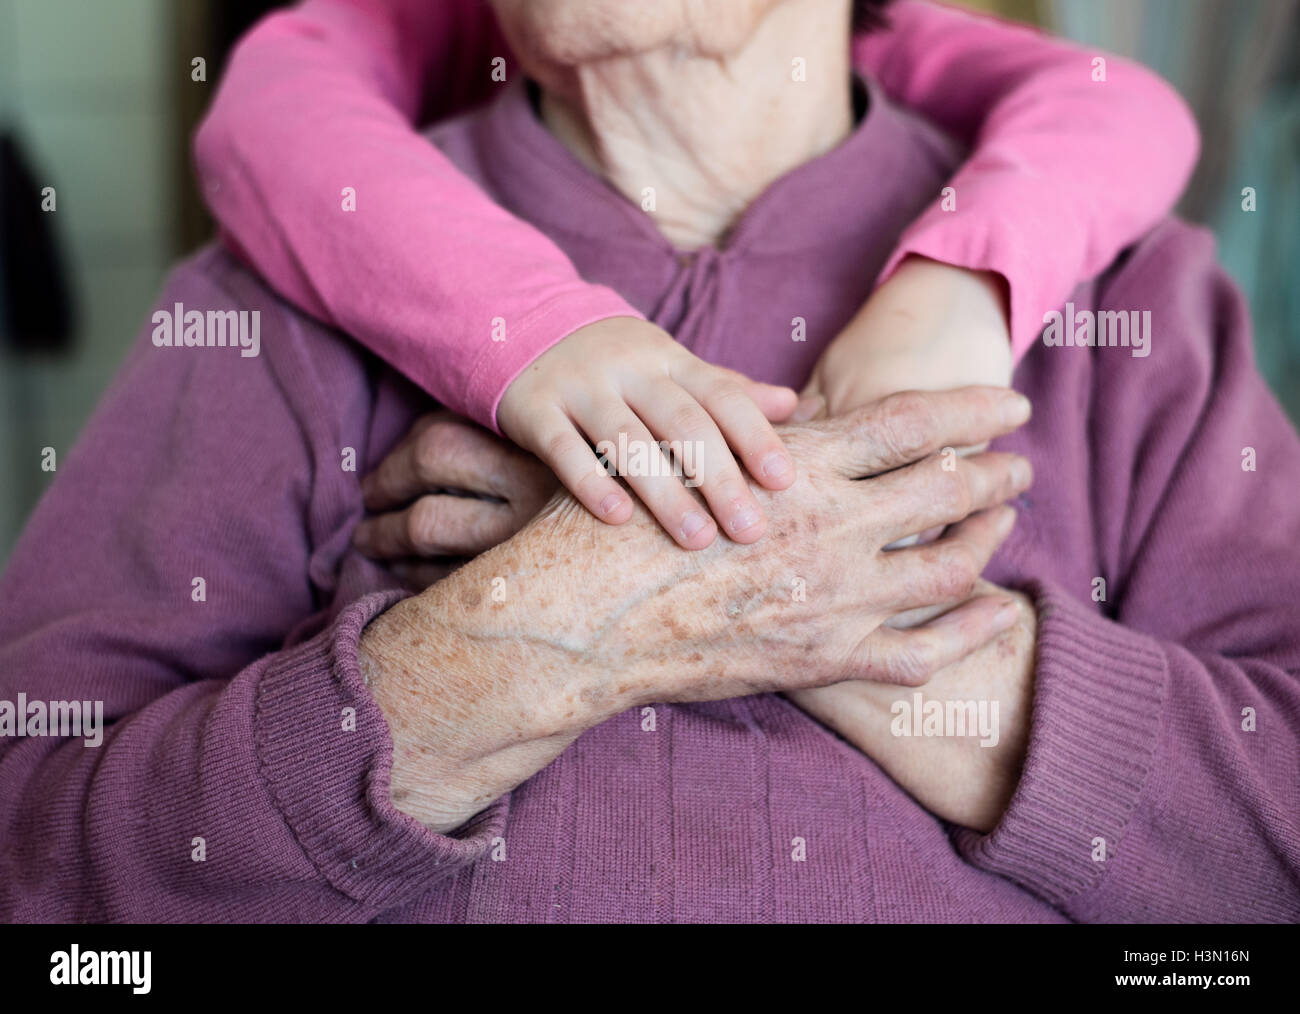 Unrecognizable granddaughter holding hands of her grandmother - Stock Image